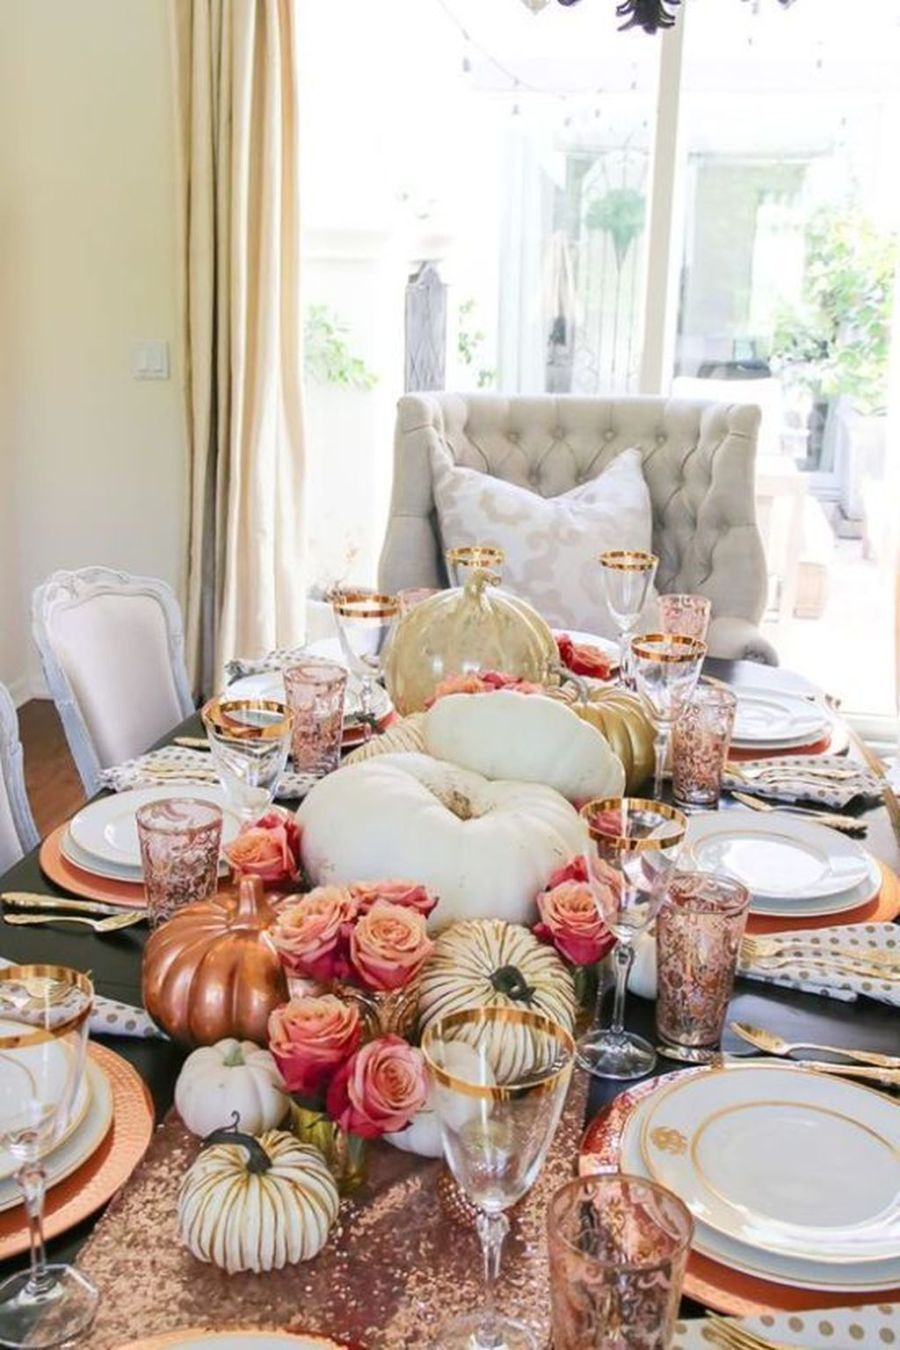 33 Beautiful Thanksgiving Dinner Table Decor Ideas - belihouse.com #thanksgivingdinnertable